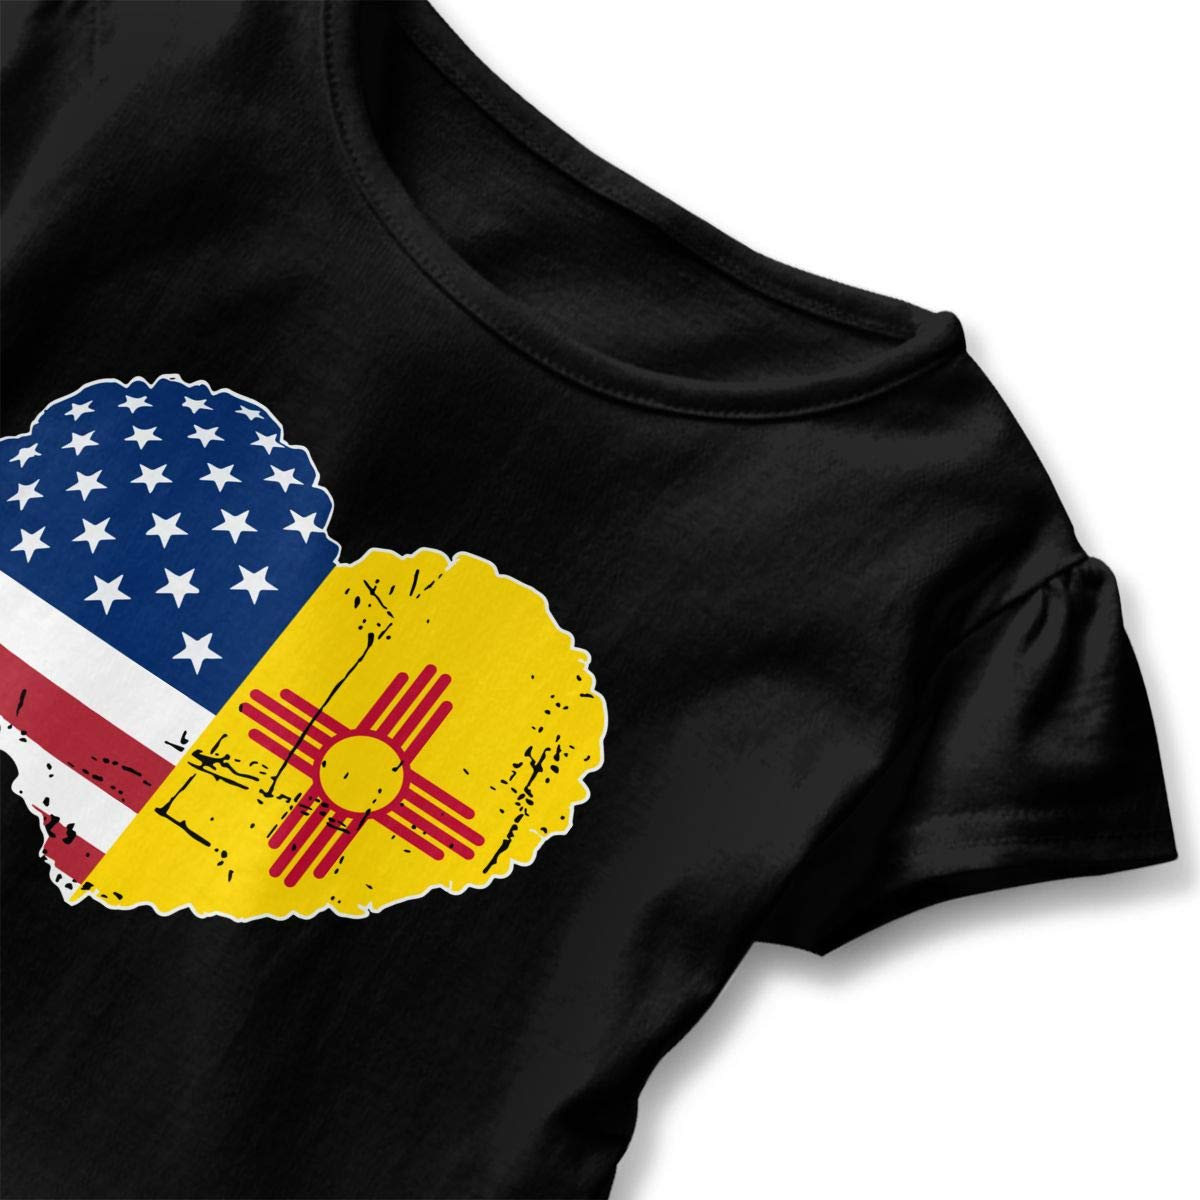 Vfbggg-Shirt New Mexico USA Flag Heart Baby Girls Short Sleeve Ruffle Tee Cotton Kids T Shirts 2-6 Years